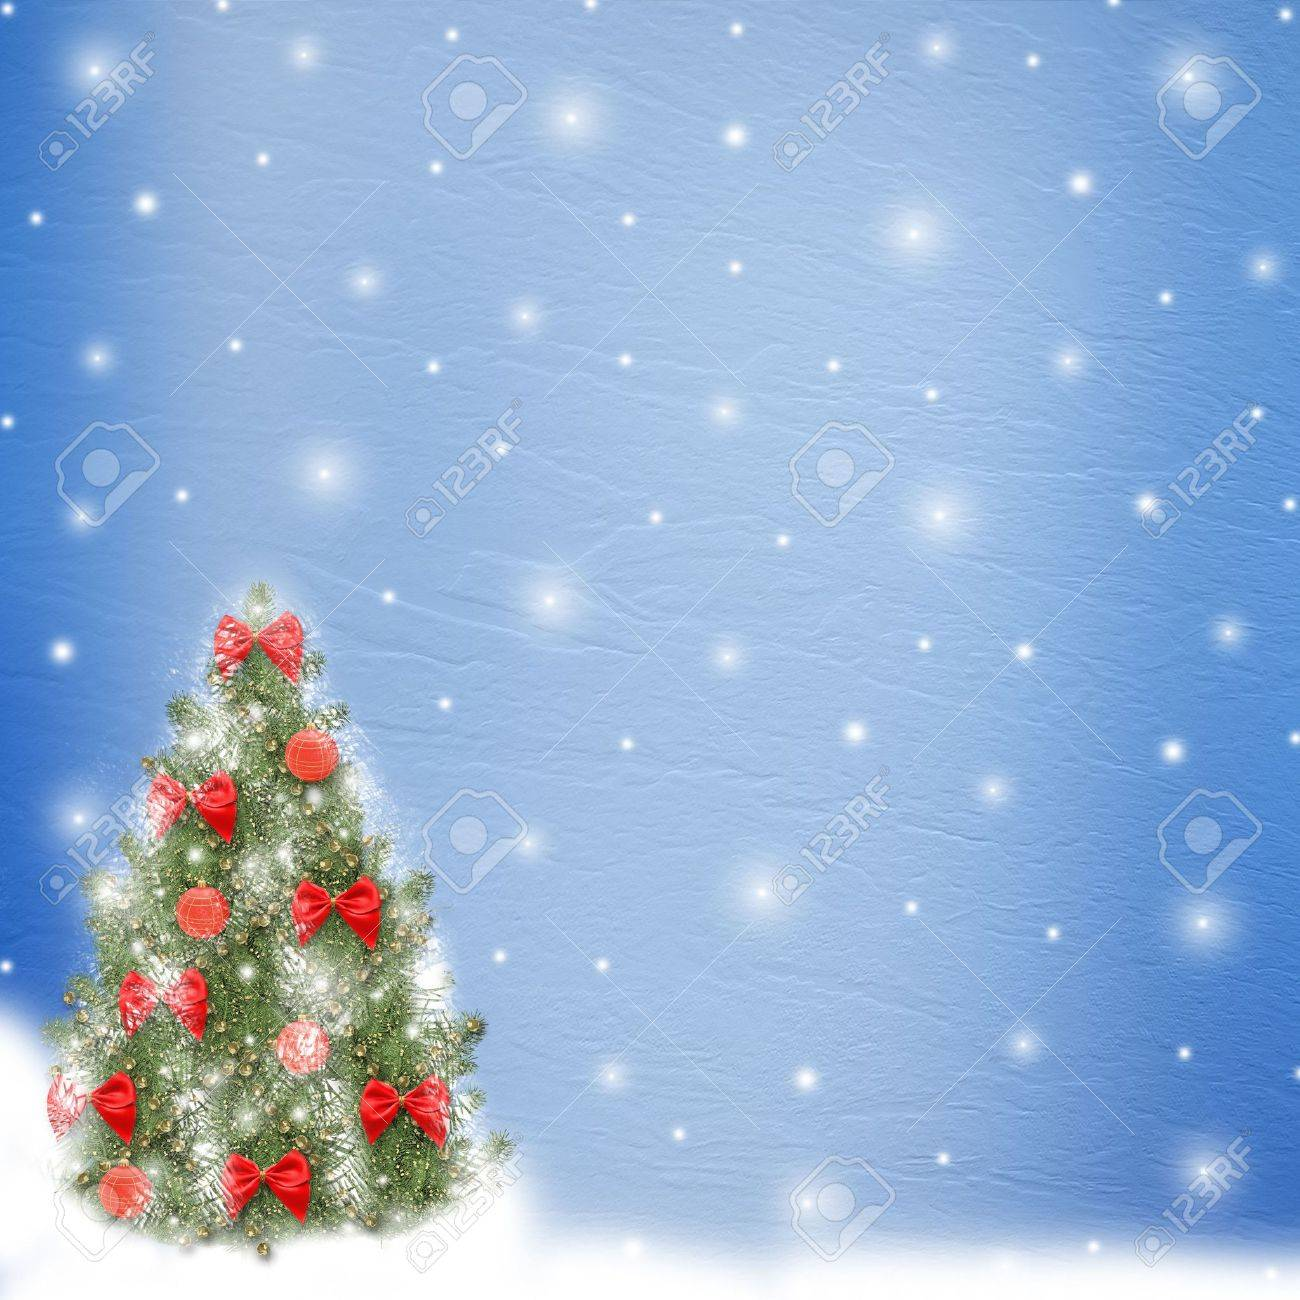 Card for congratulation. Christmas tree with balls and bows Stock Photo - 5988684